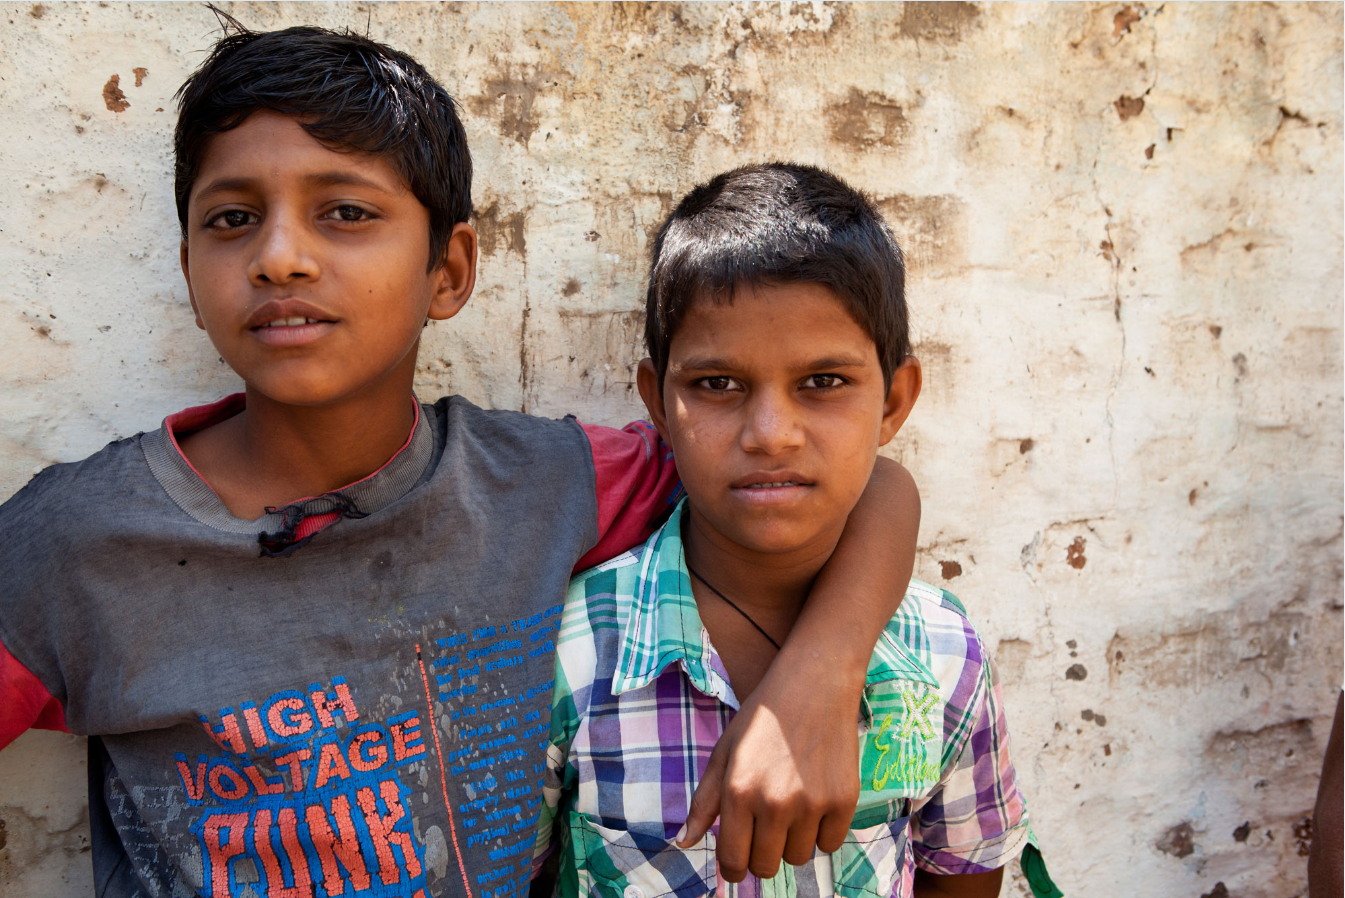 Two young men standing against a wall in India